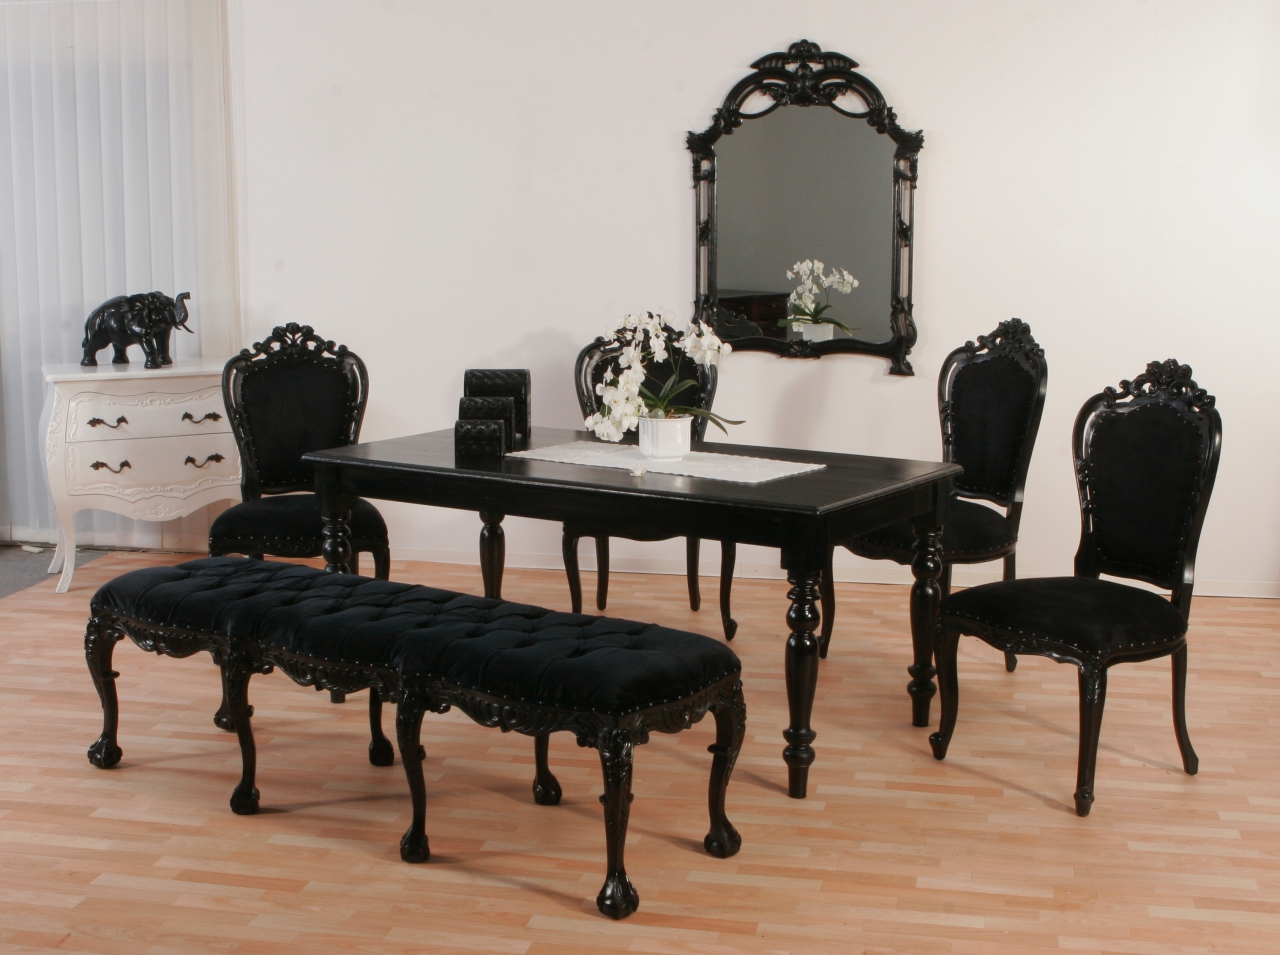 luxus esstisch mit st hlen lionsstar gmbh. Black Bedroom Furniture Sets. Home Design Ideas